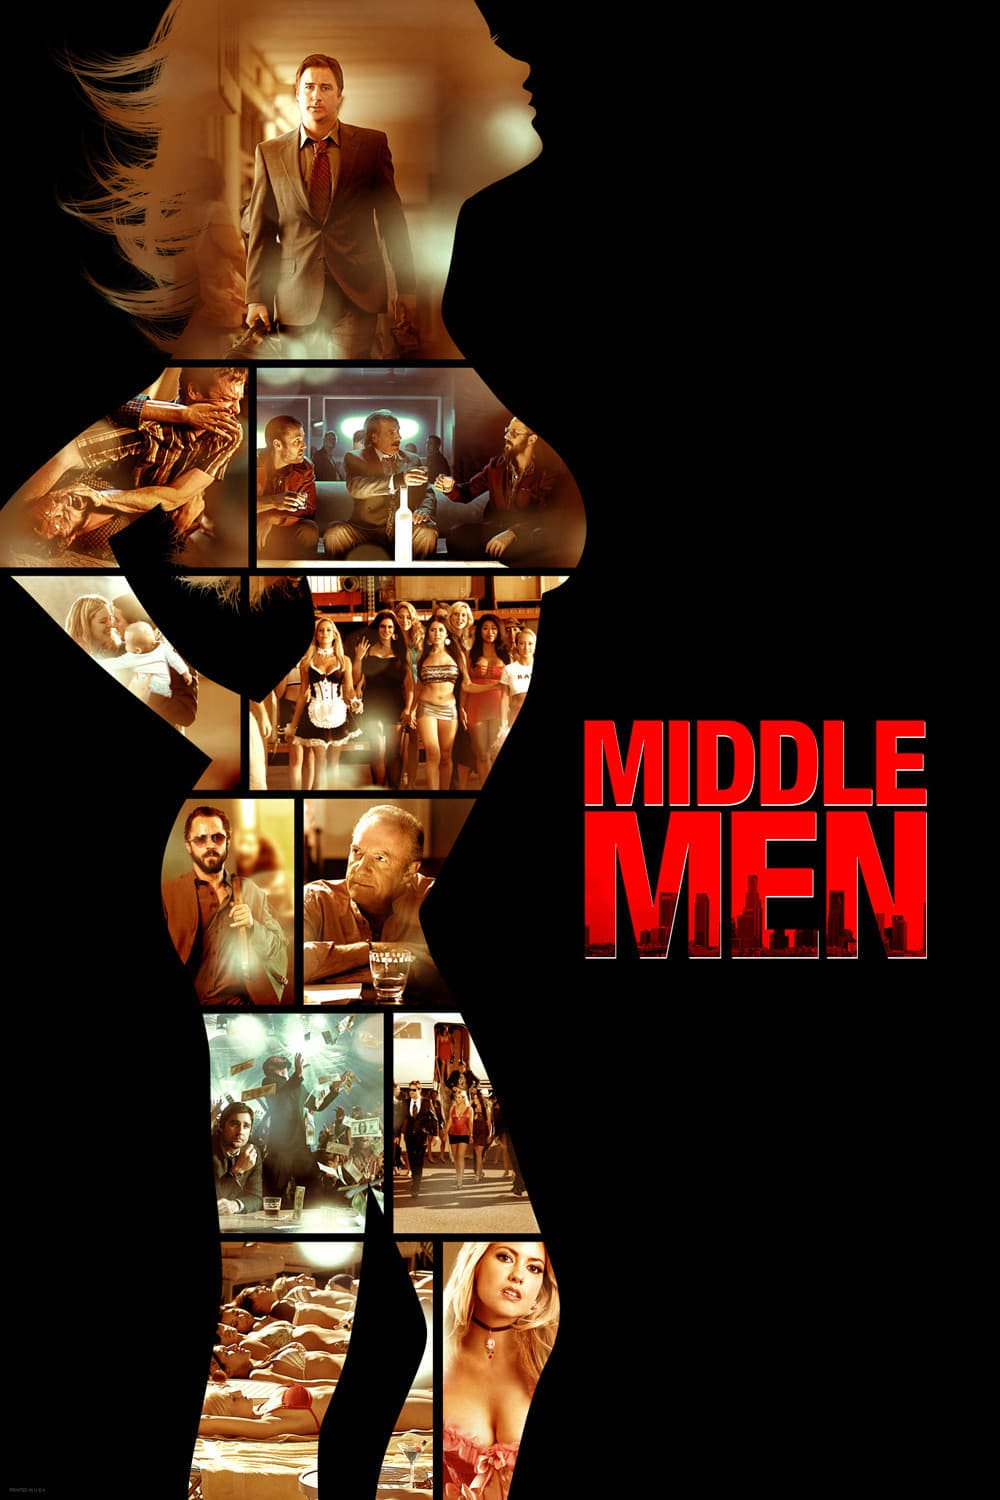 Middle Men Movie Streaming Online Watch on Tubi